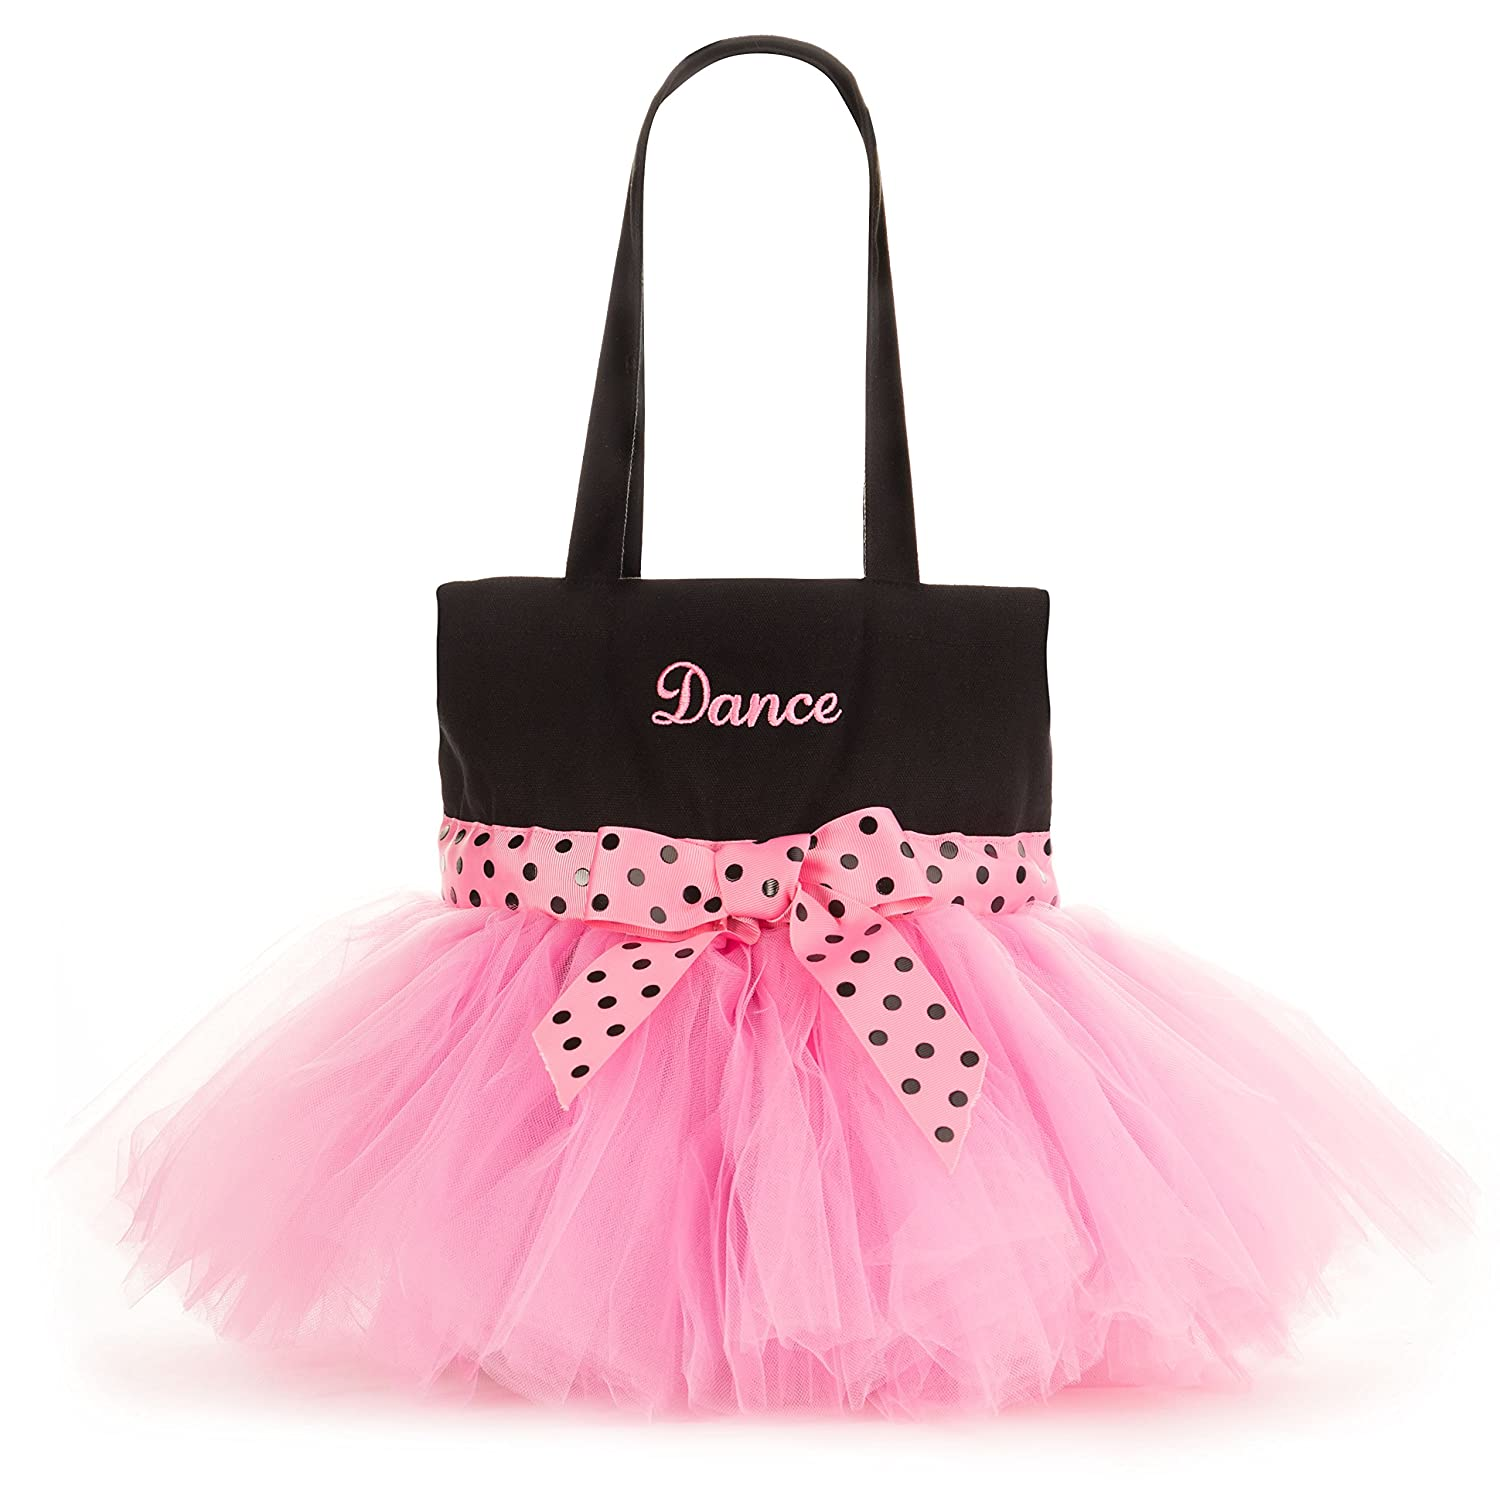 efc541ec29 Amazon.com : Pardao Cute Dance Bag for Little Girls - Ballerina Tutu Bag for  Kids - Small Ballet Shoe Tote : Sports & Outdoors